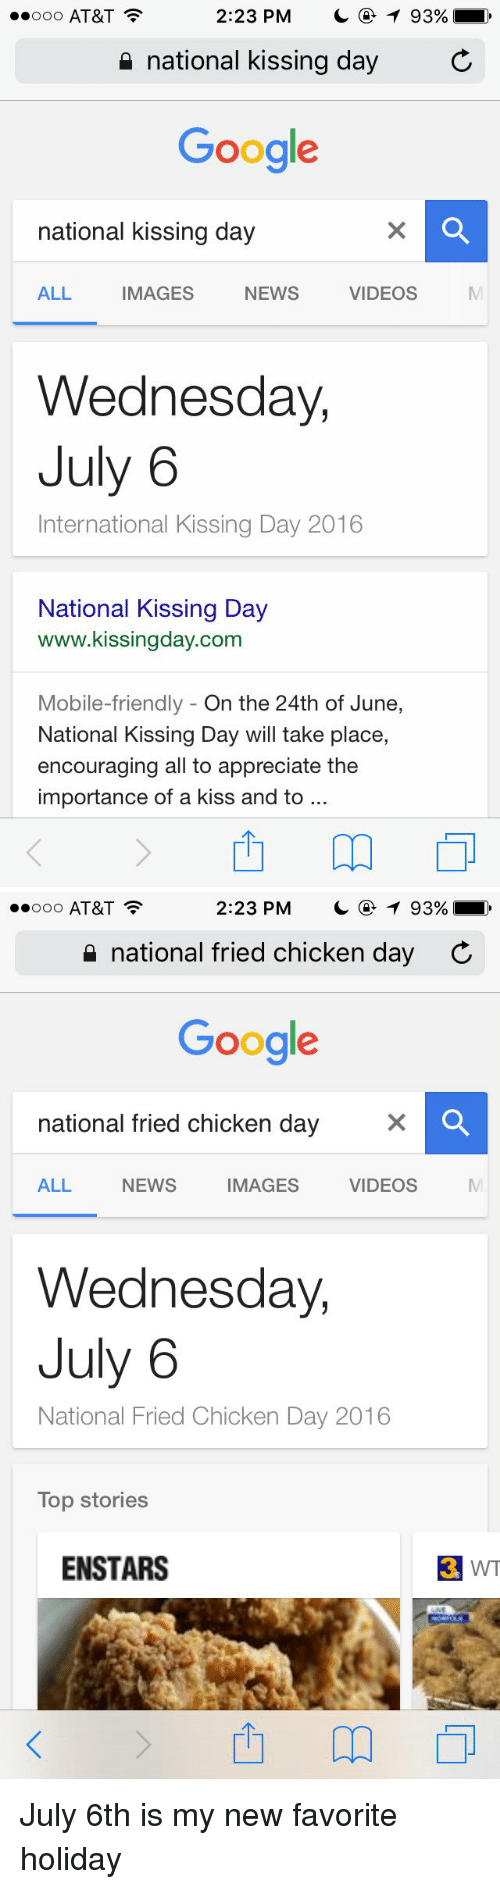 Googłe: 2:23 PM  T 93%  ooo AT&T  national kissing day  C  Google  national kissing day  ALL  IMAGES  NEWS  VIDEOS  Wednesday,  July 6  International Kissing Day 2016  National Kissing Day  www.kissingday.com  Mobile-friendly On the 24th of June  National Kissing Day will take place,  encouraging all to appreciate the  importance of a kiss and to   2:23 PM  T 93%  ooo AT&T  national fried chicken day C  Google  national fried chicken day  VIDEOS  IMAGES  ALL NEWS  Wednesday,  July 6  National Fried Chicken Day 2016  Top stories  ENSTARS  3 WT July 6th is my new favorite holiday